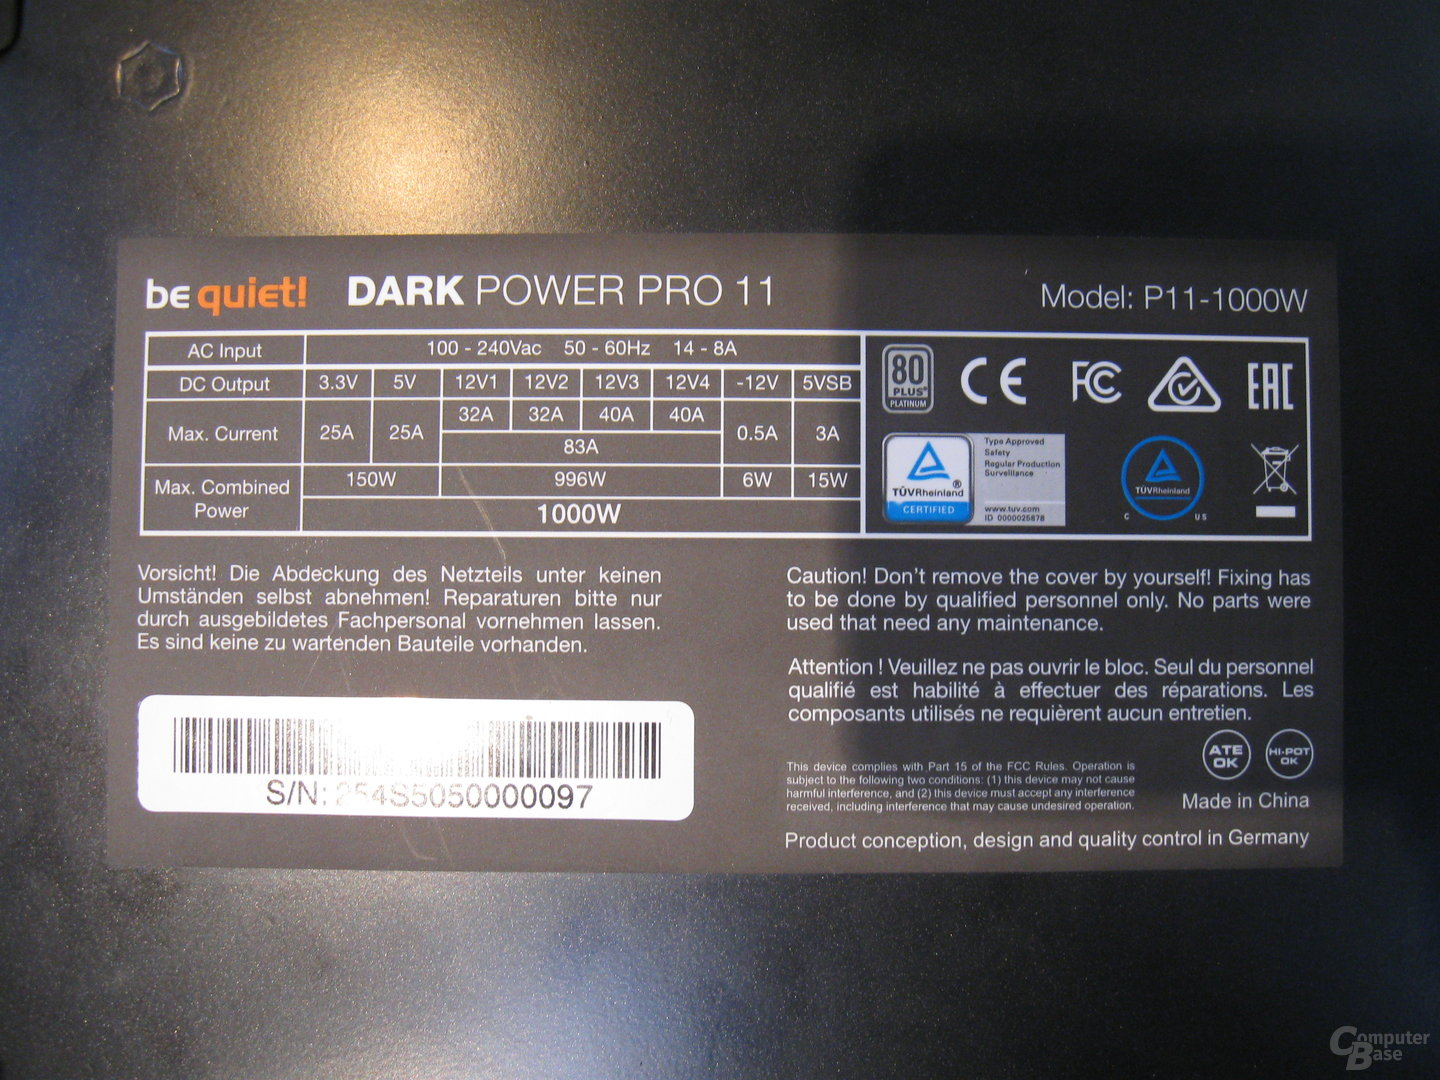 be quiet! Dark Power Pro P11 – Technische Daten